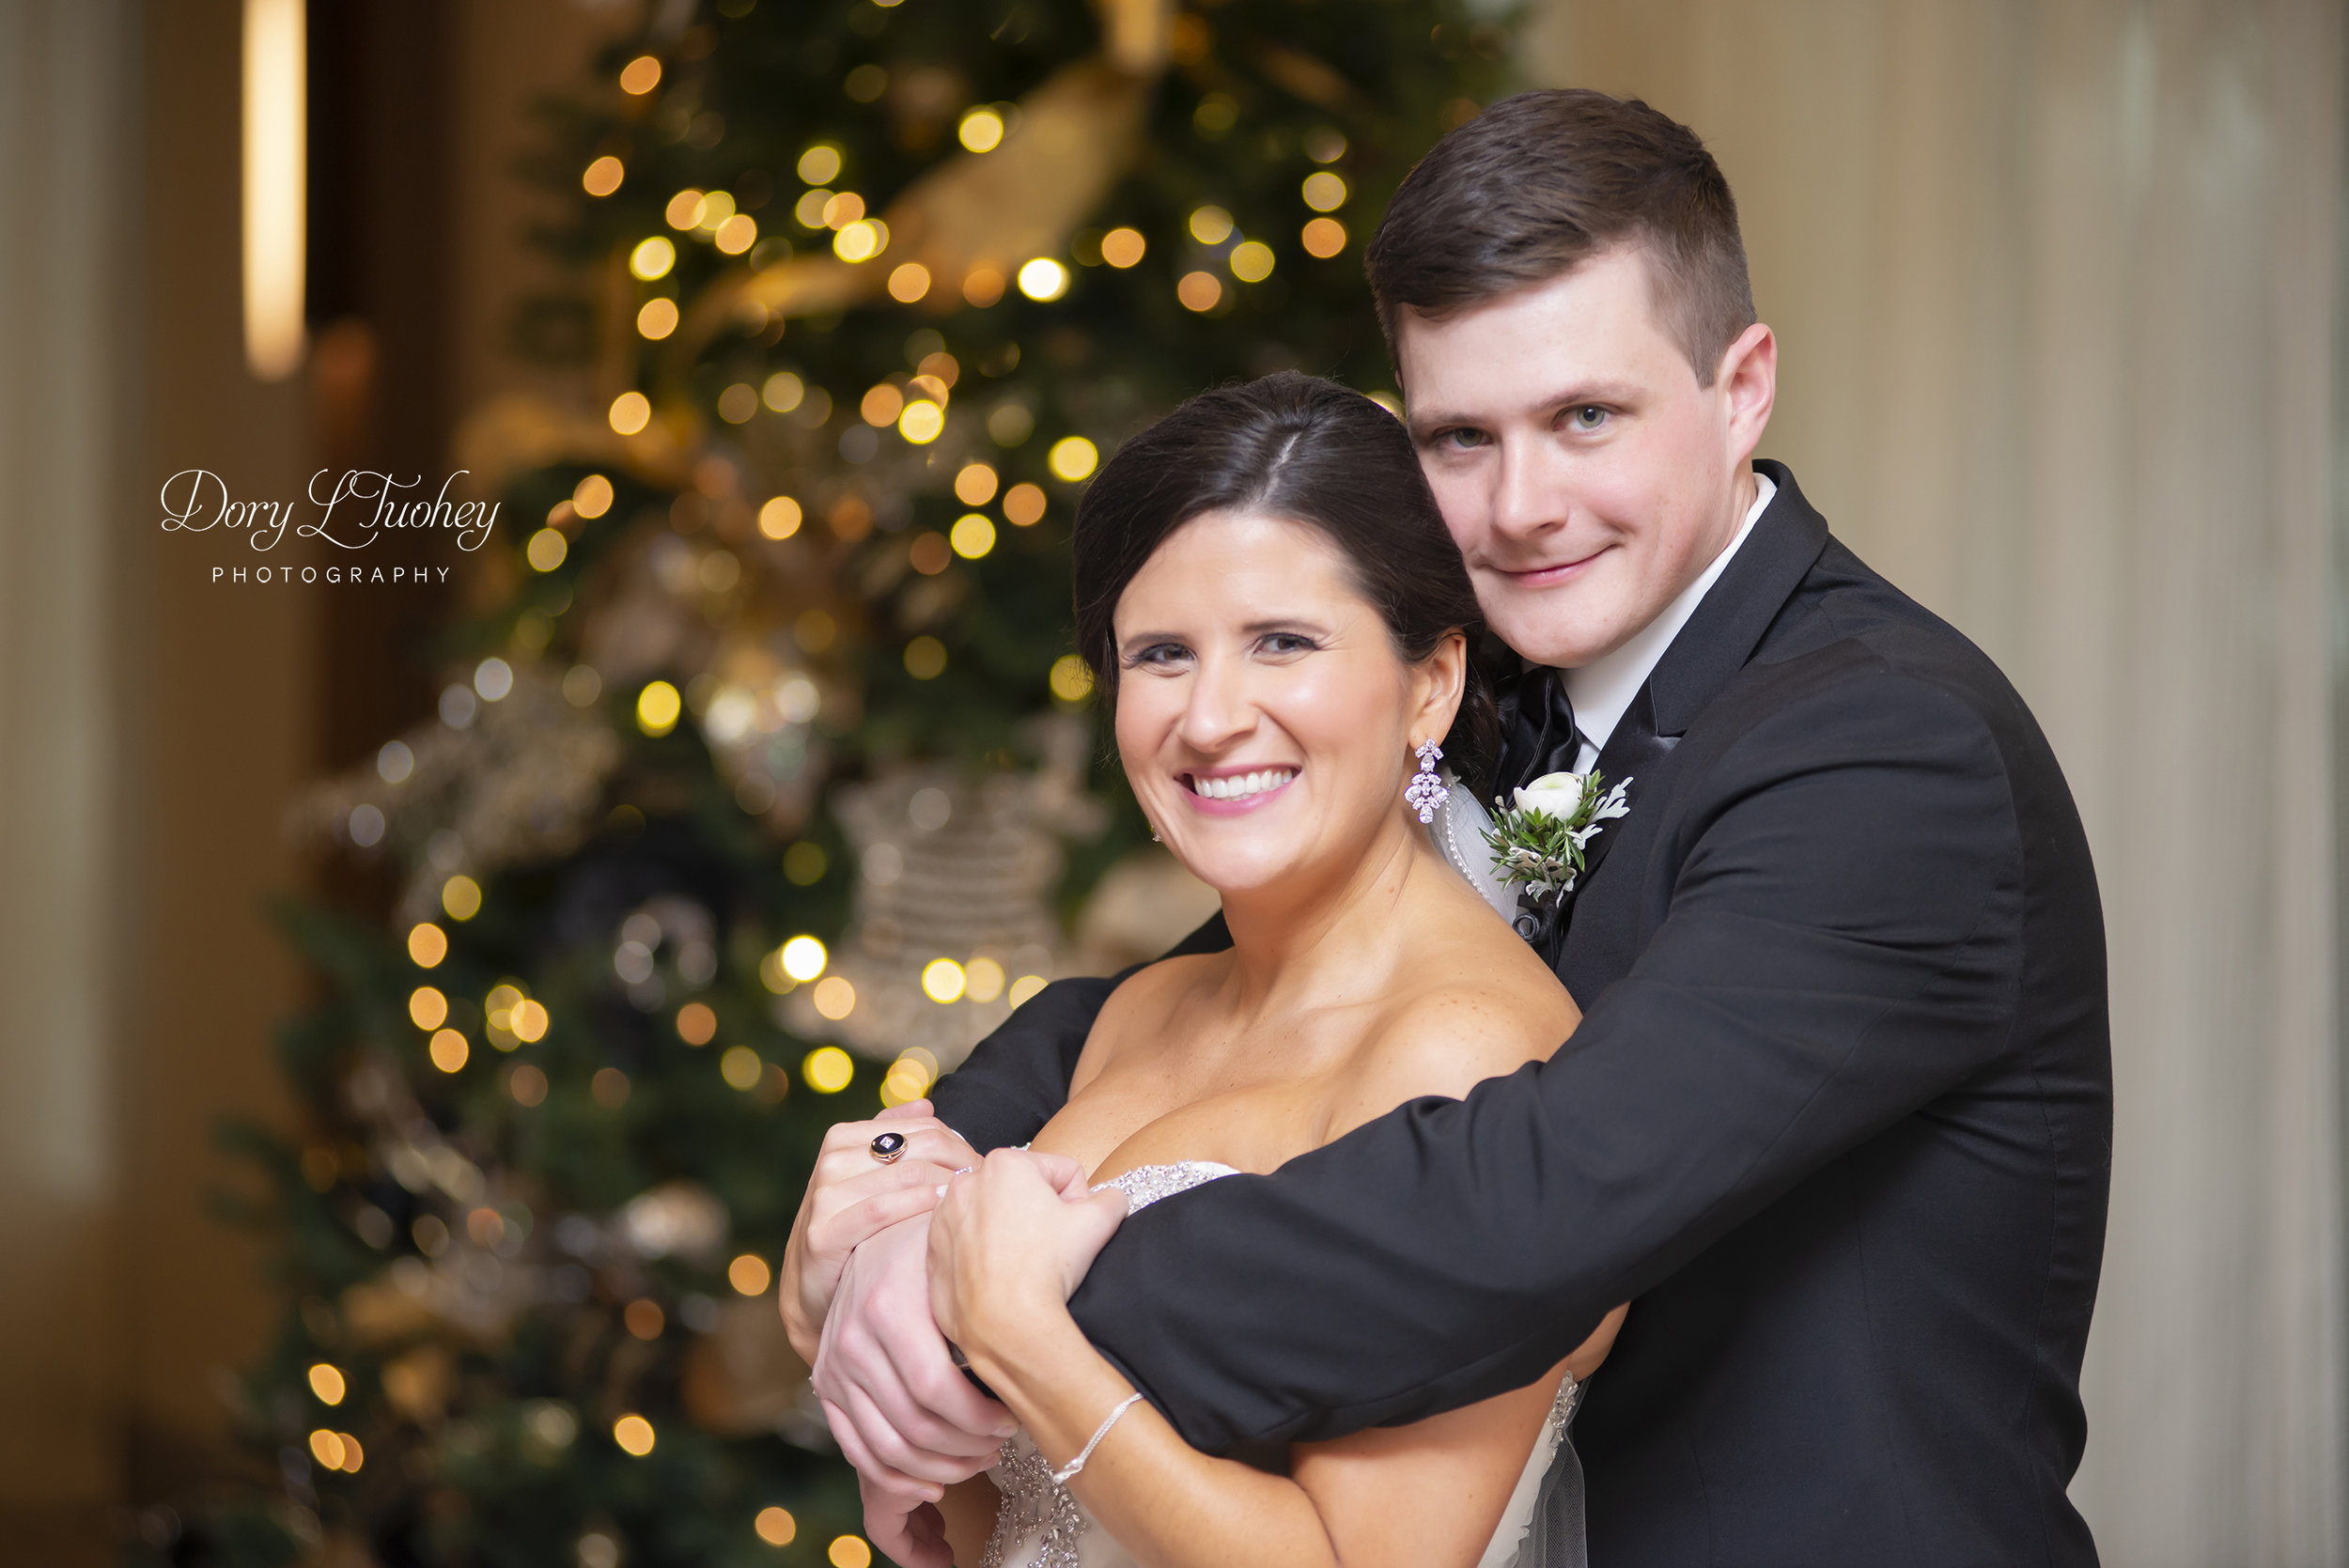 Burr_ridge__wedding_marriott_dory_photographer_illinois_gold_new_years_eve_nye_14.jpg